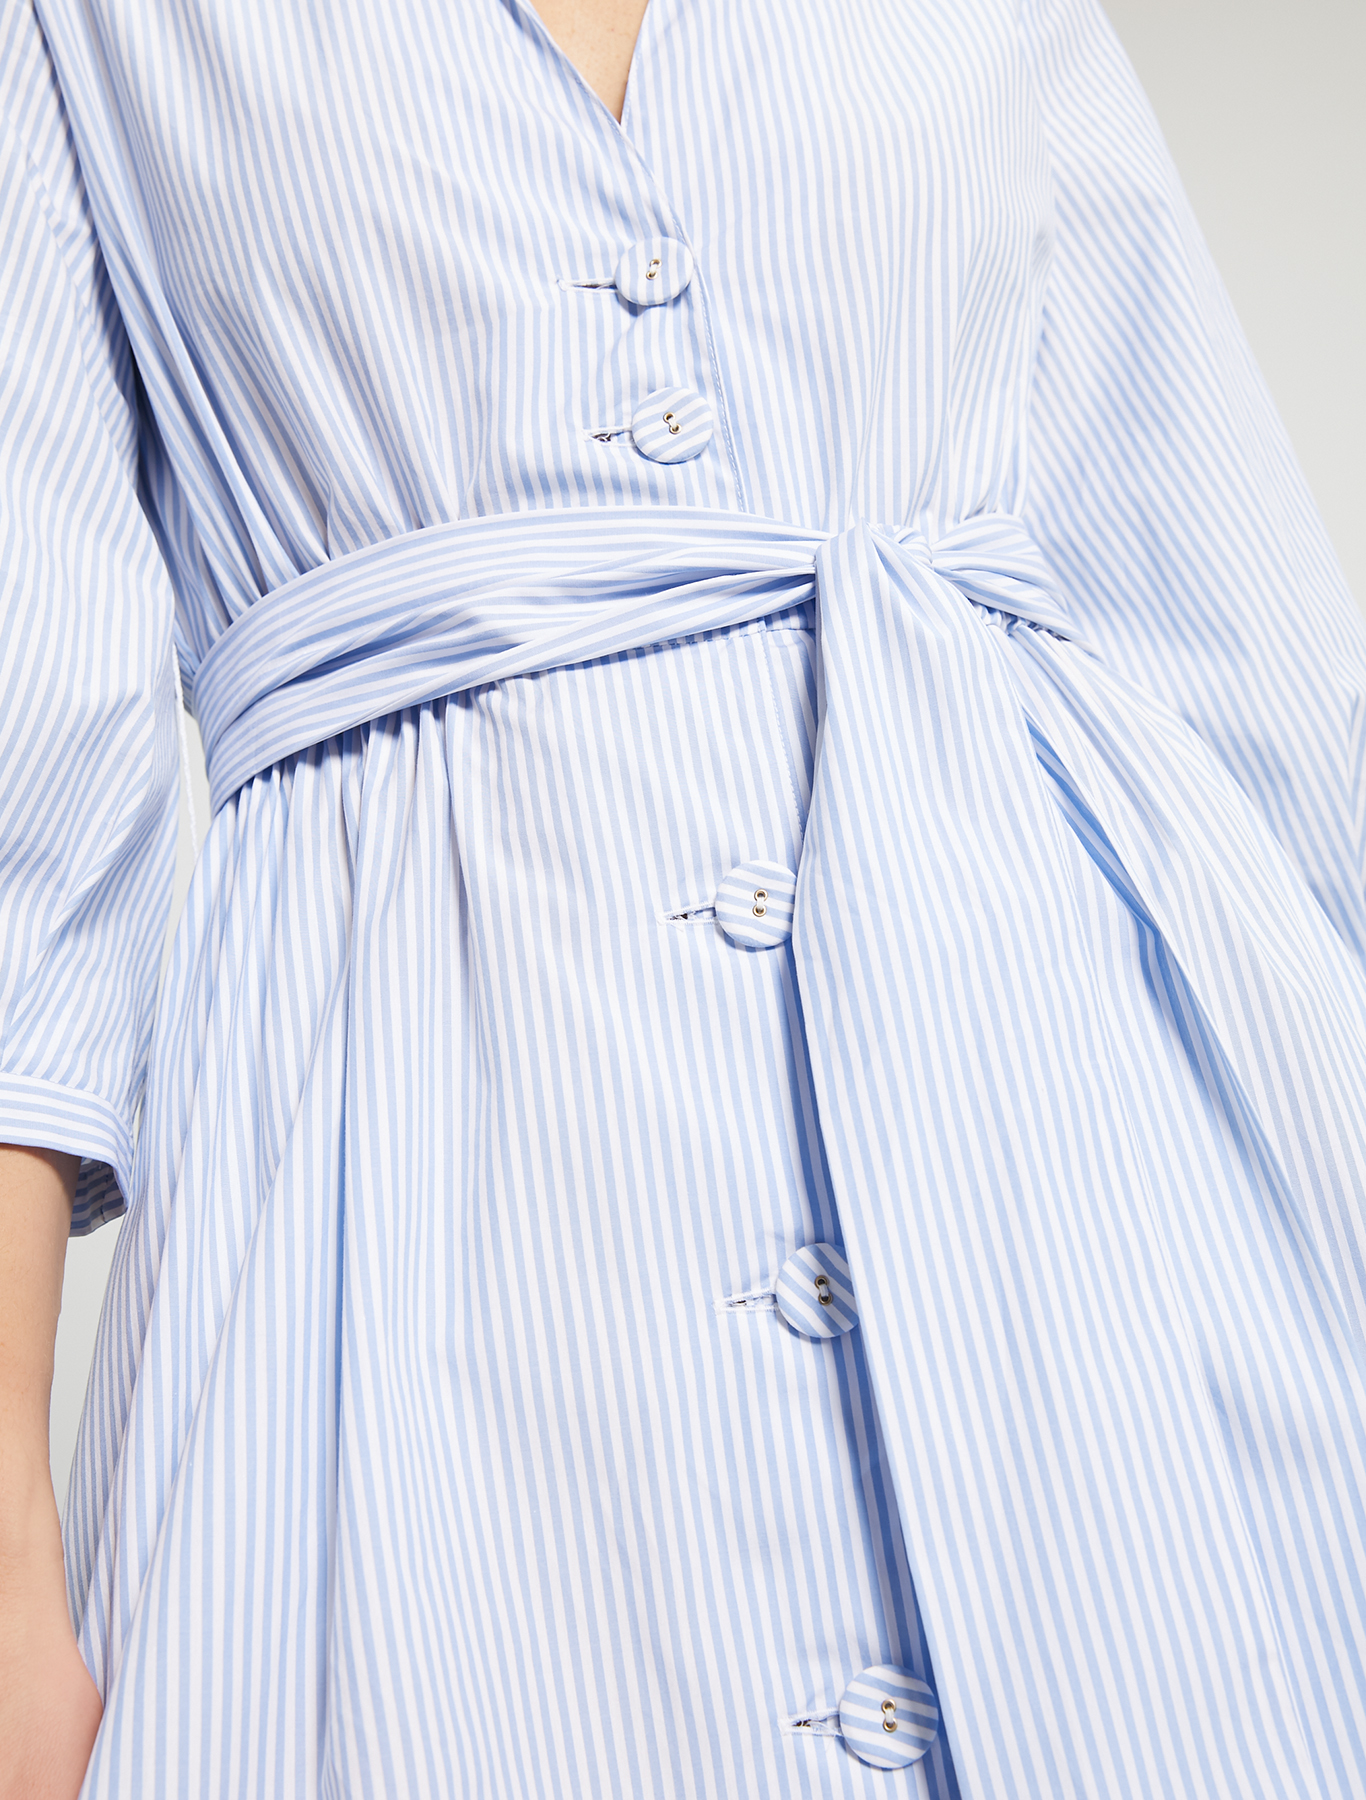 Poplin cotton shirt dress - light blue pattern - pennyblack